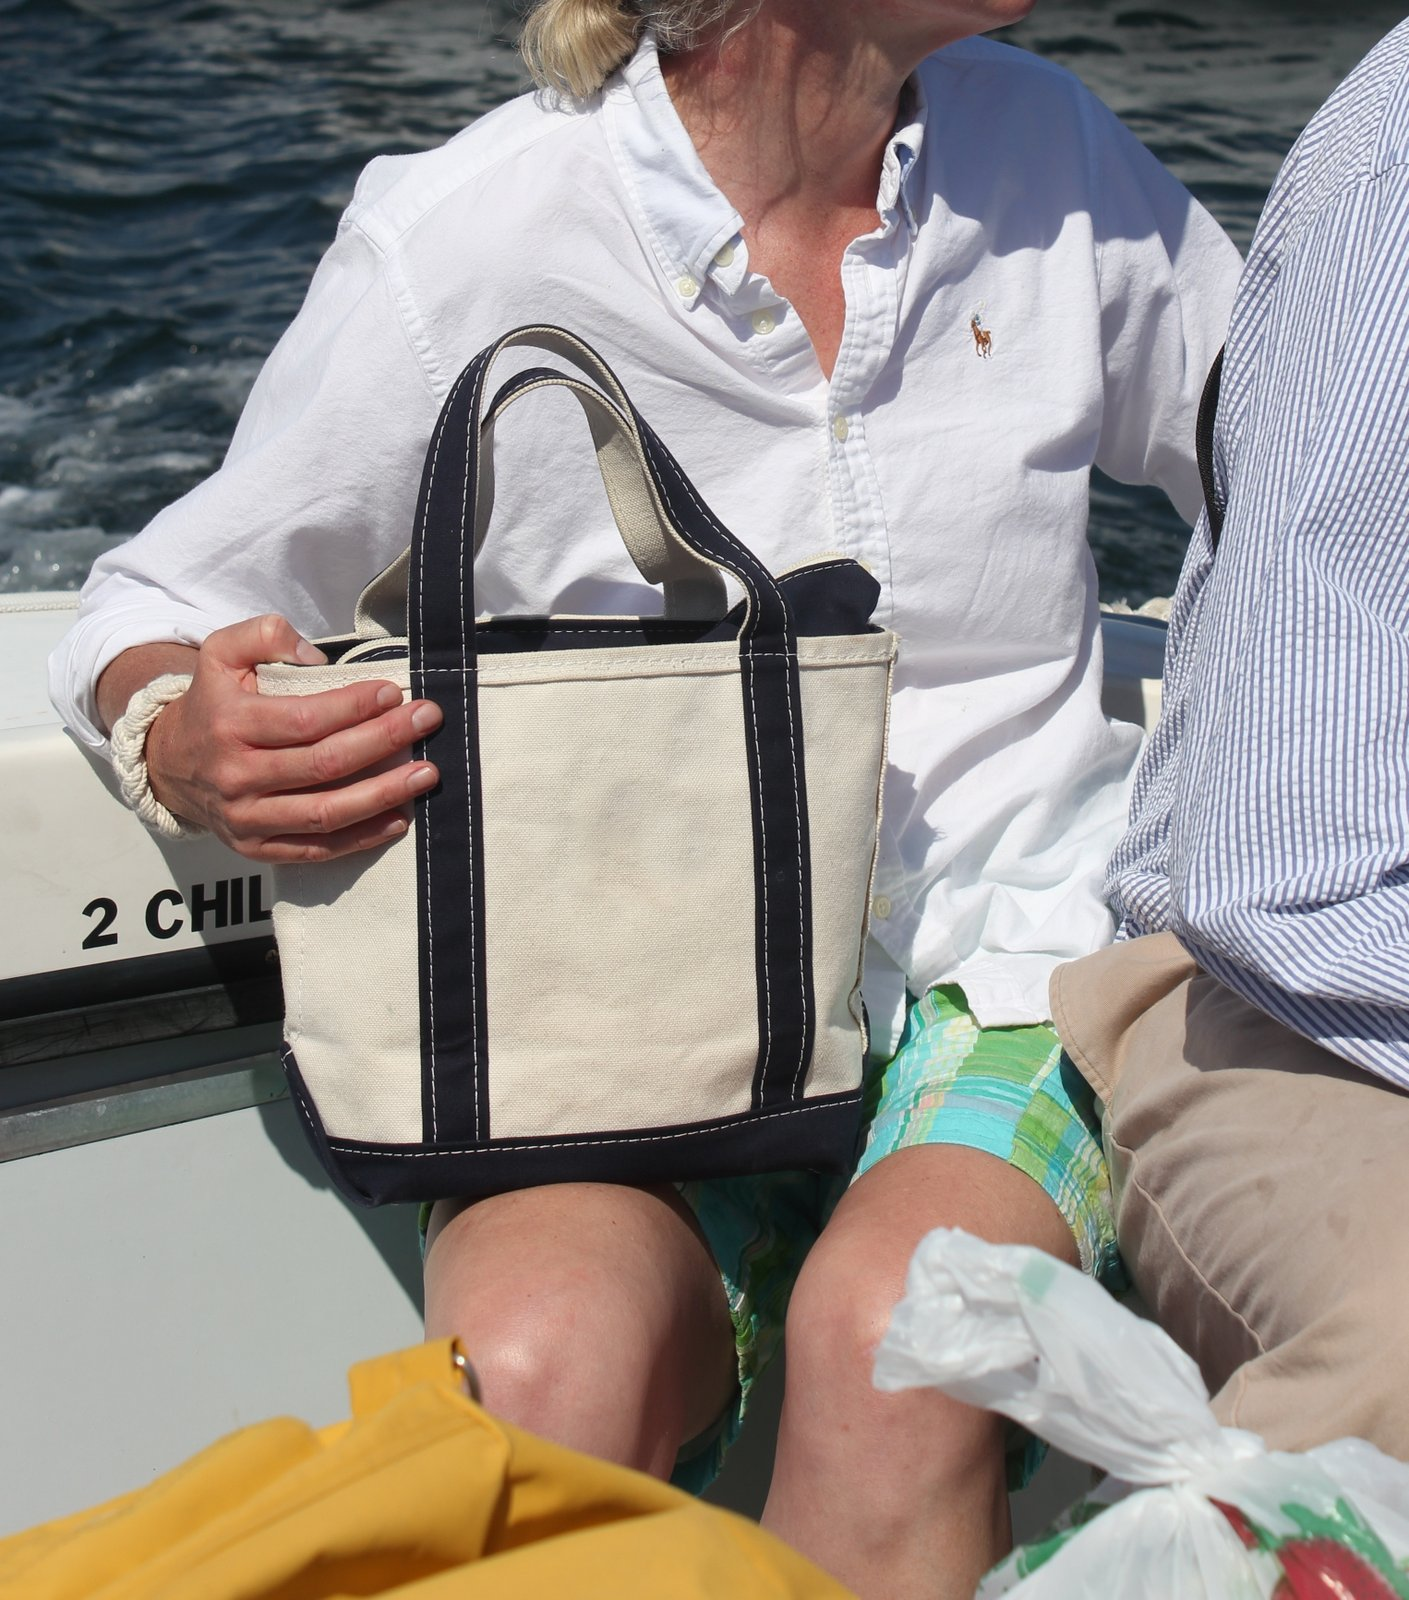 cef5c6ac25 Salt Water New England  L.L. Bean Boat and Tote Questions